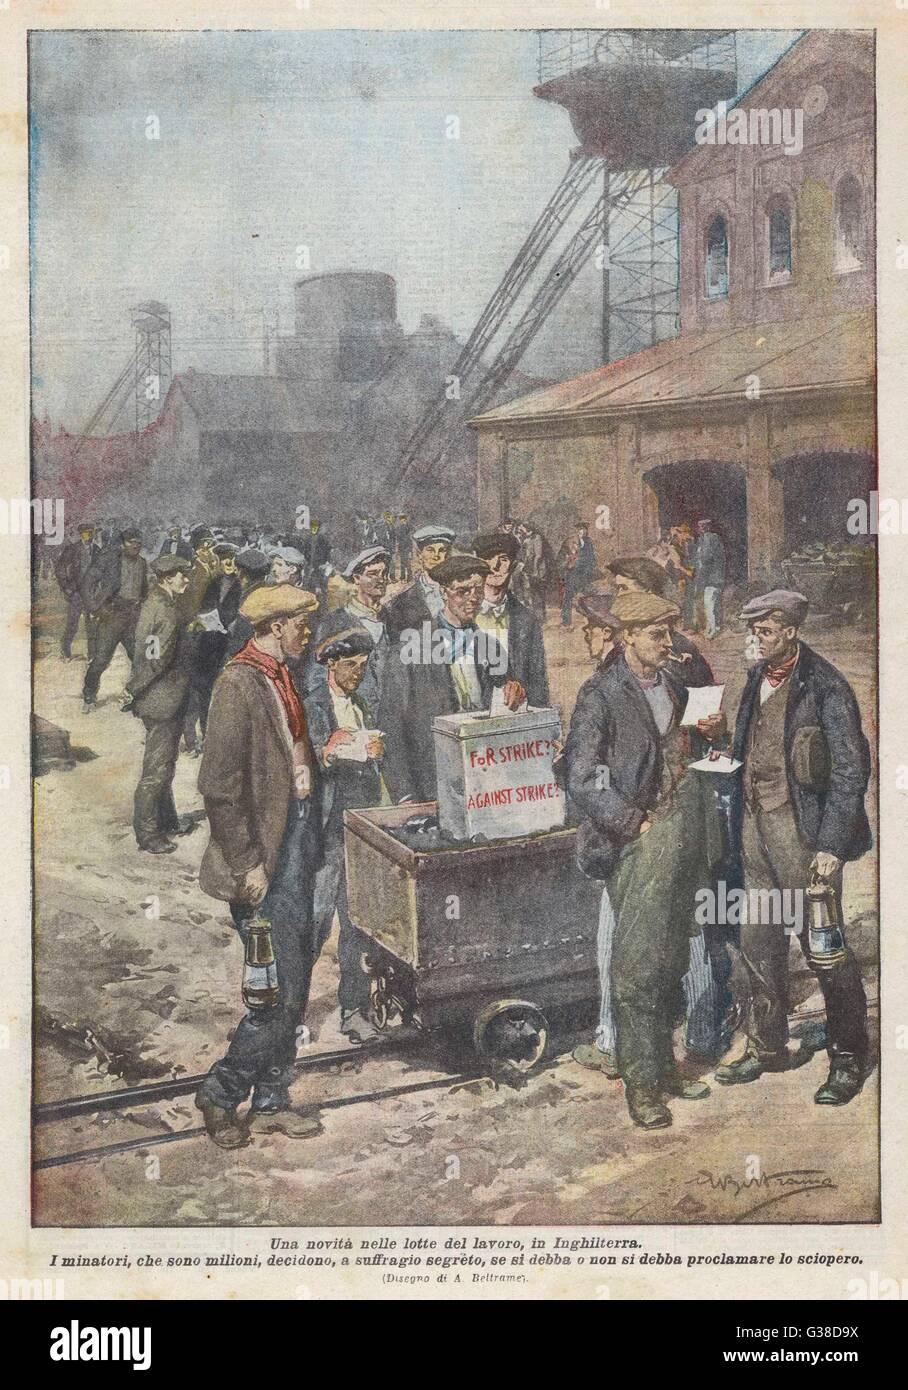 After a secret ballot, British  miners decide to go on strike        Date: September 1920 - Stock Image